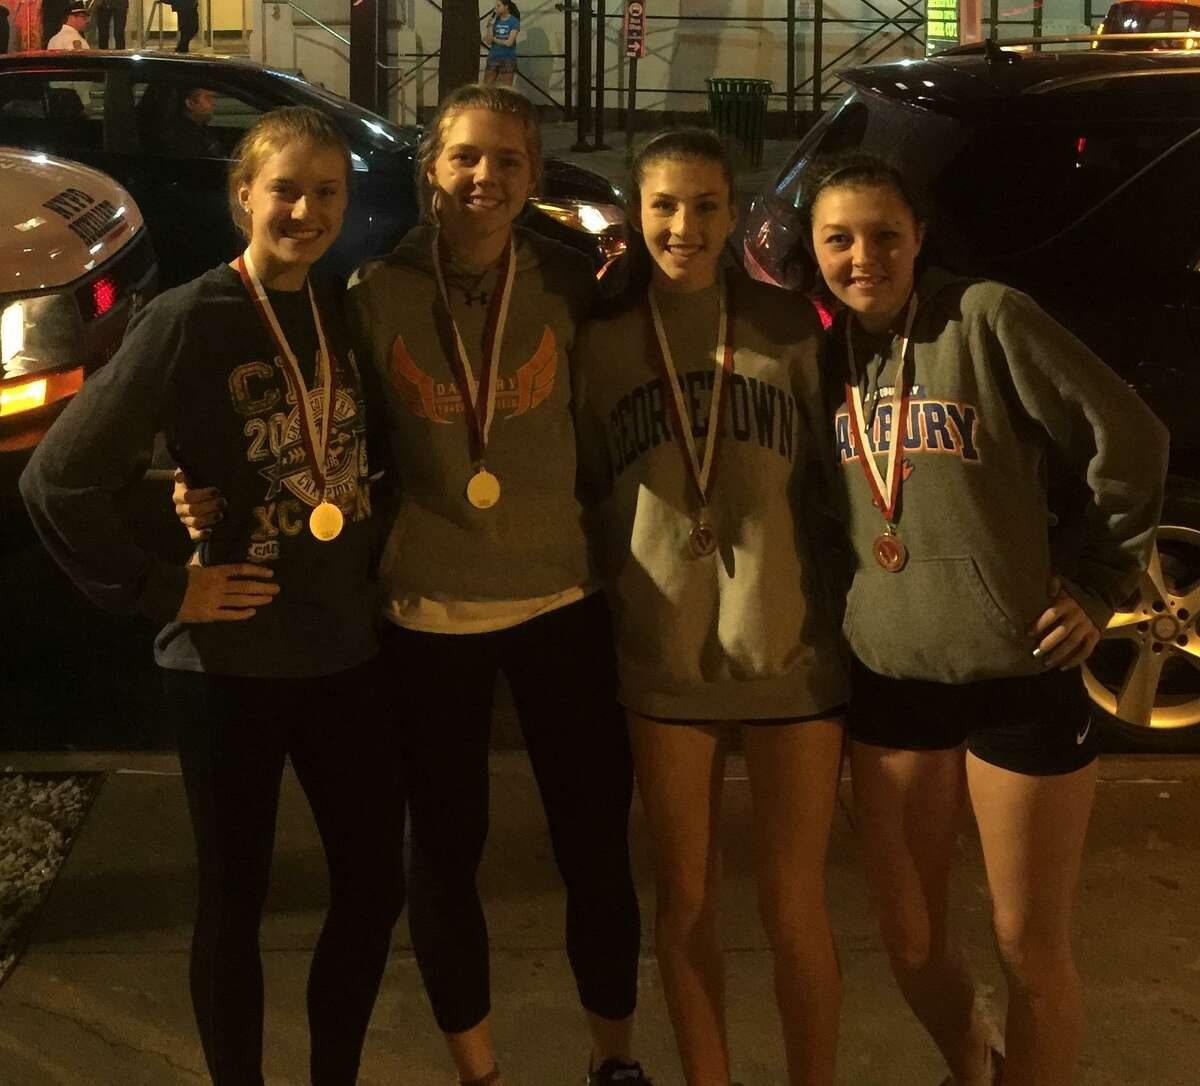 The Danbury High School girls indoor track and field team's distance medley relay team of Leah Sarkisian, Olivia Turk, Cassandra Sturdevant and Lauren Moore placed fourth at the Eastern States Championships on Feb. 20, 2018 at the Armory in New York City.